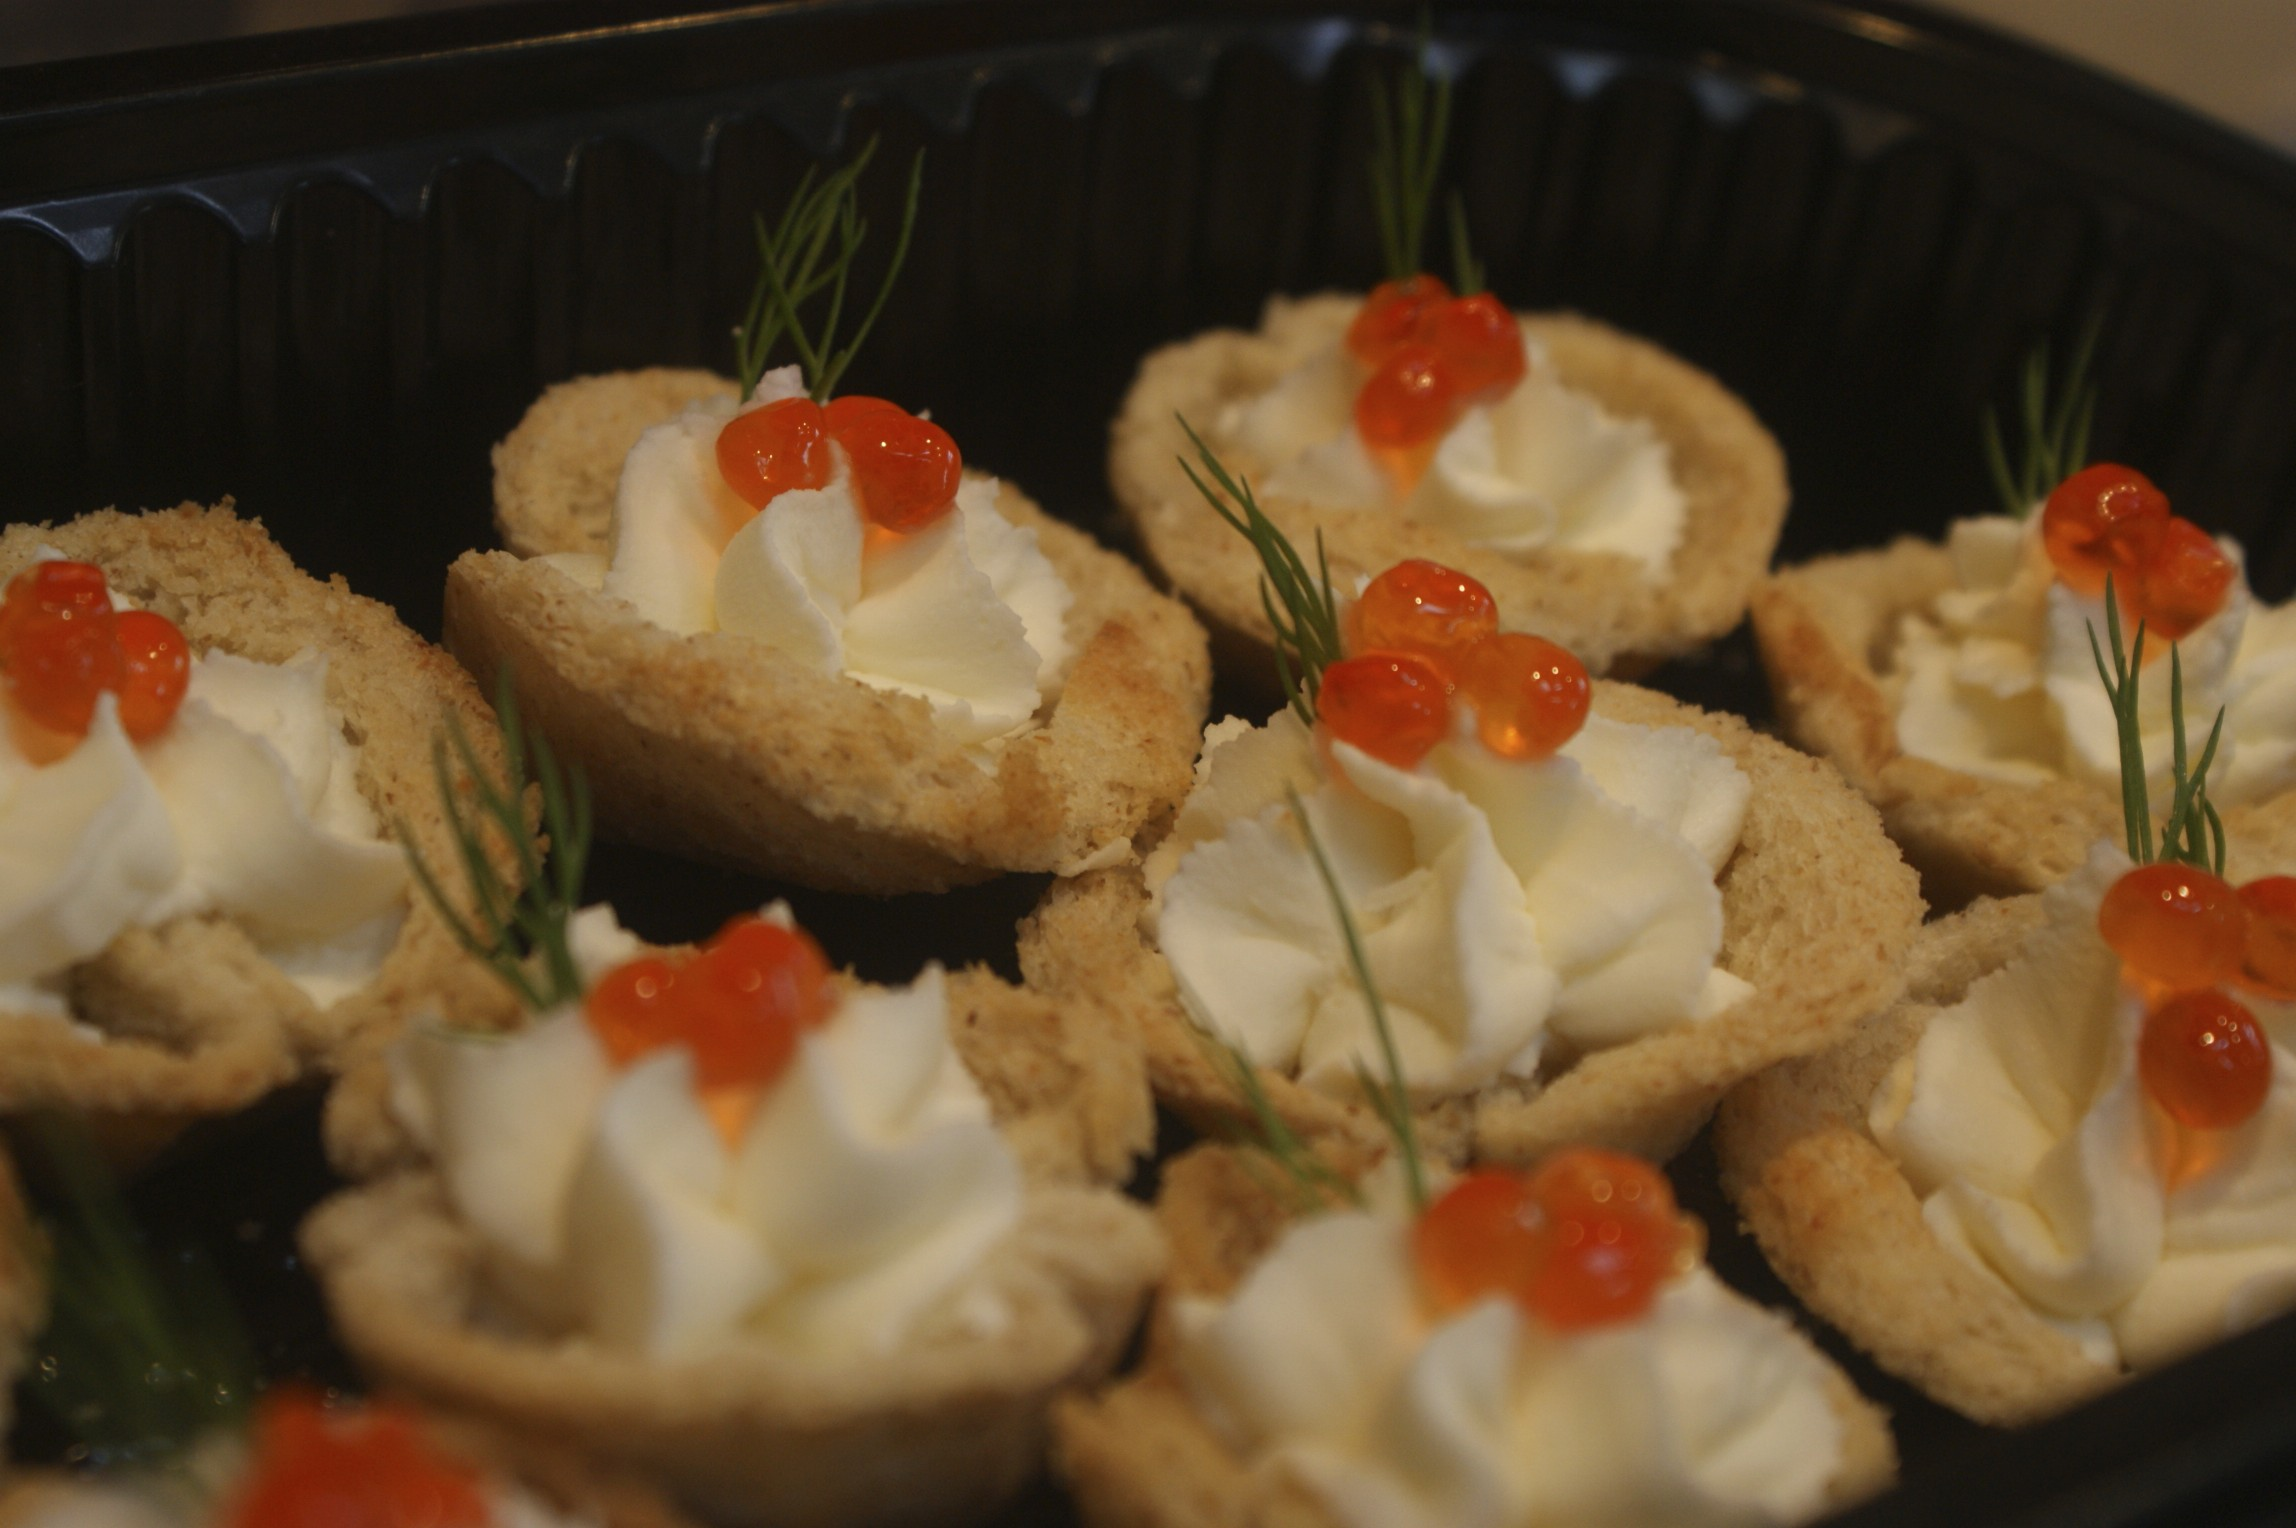 Canape ideas for special occasions for Canape fillings